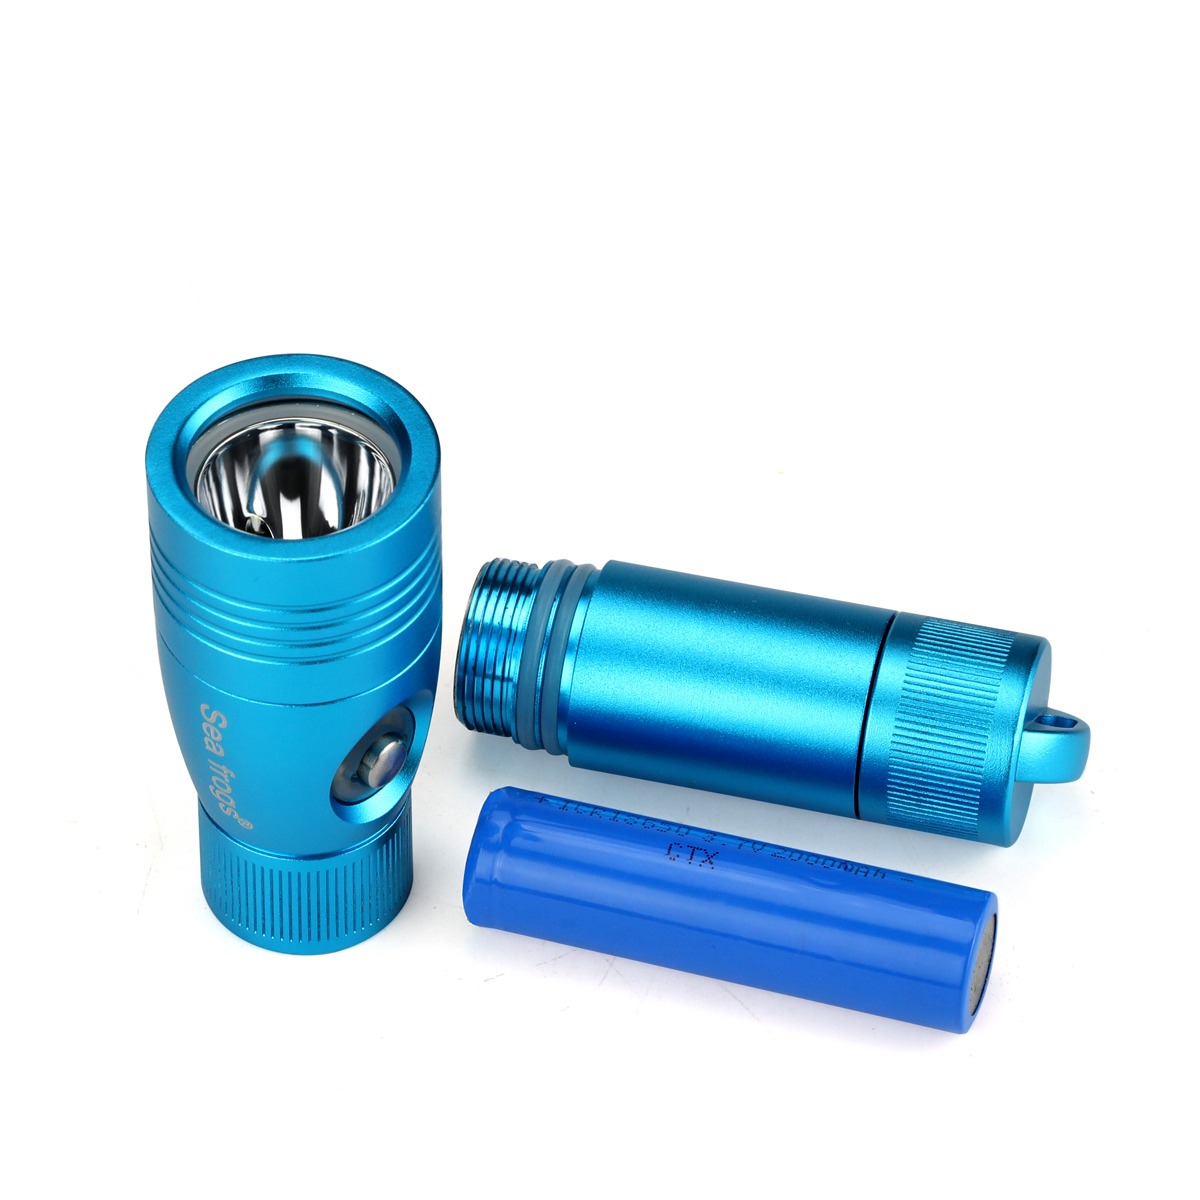 OEM Patent Factory Genuine Original High Quality underwater video light most powerful led diving flashlight blue light led torch